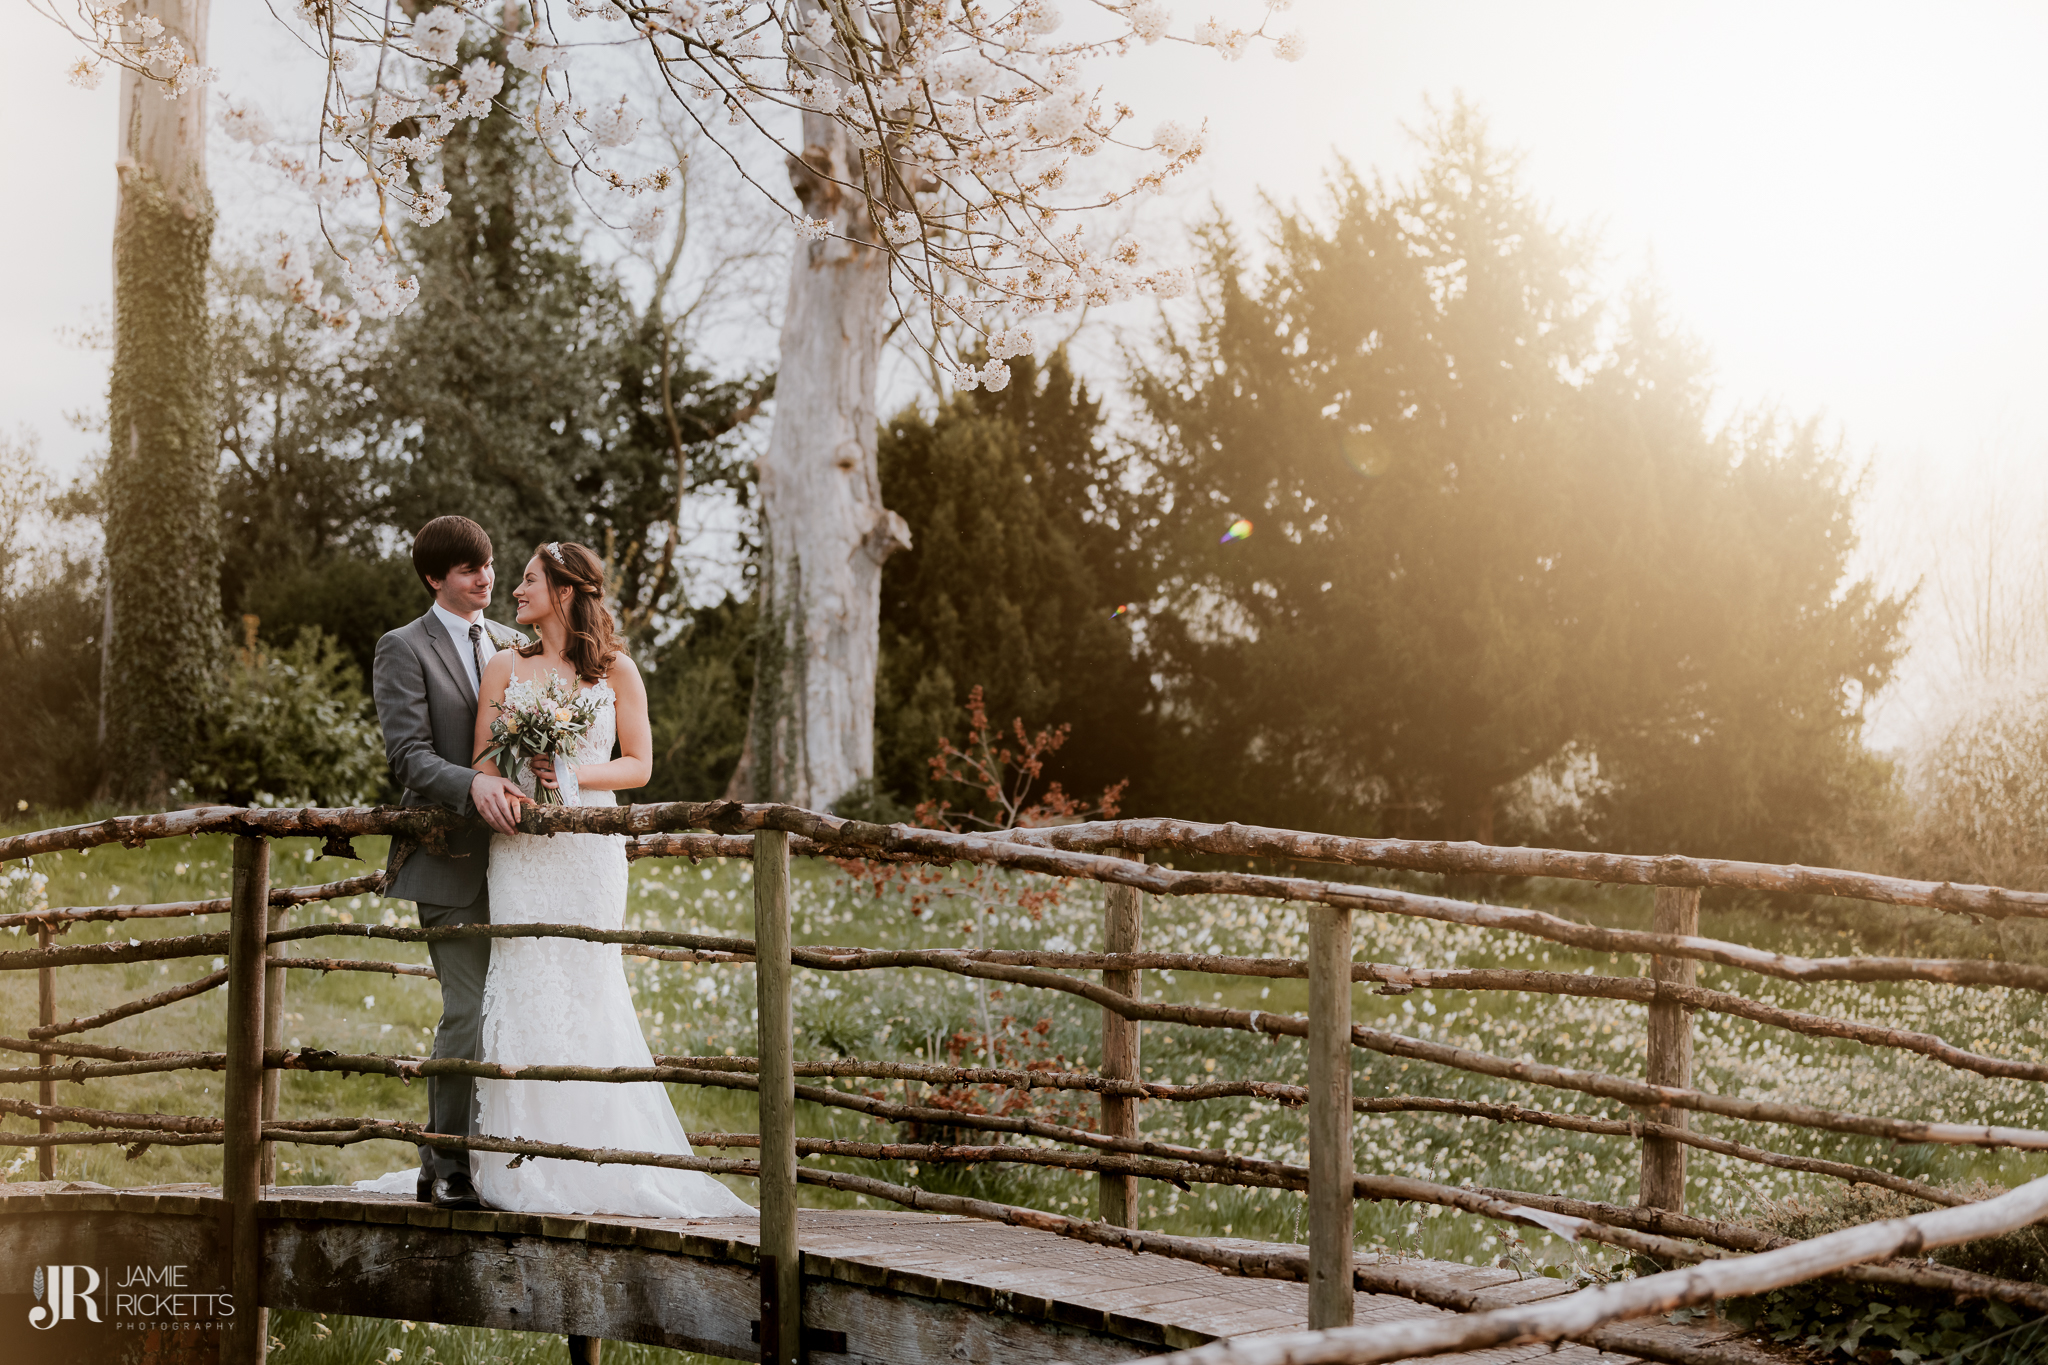 SPRING WEDDING WORKSHOP - HOSTED BY JAMES DAVIES PHOTOGRAPHY